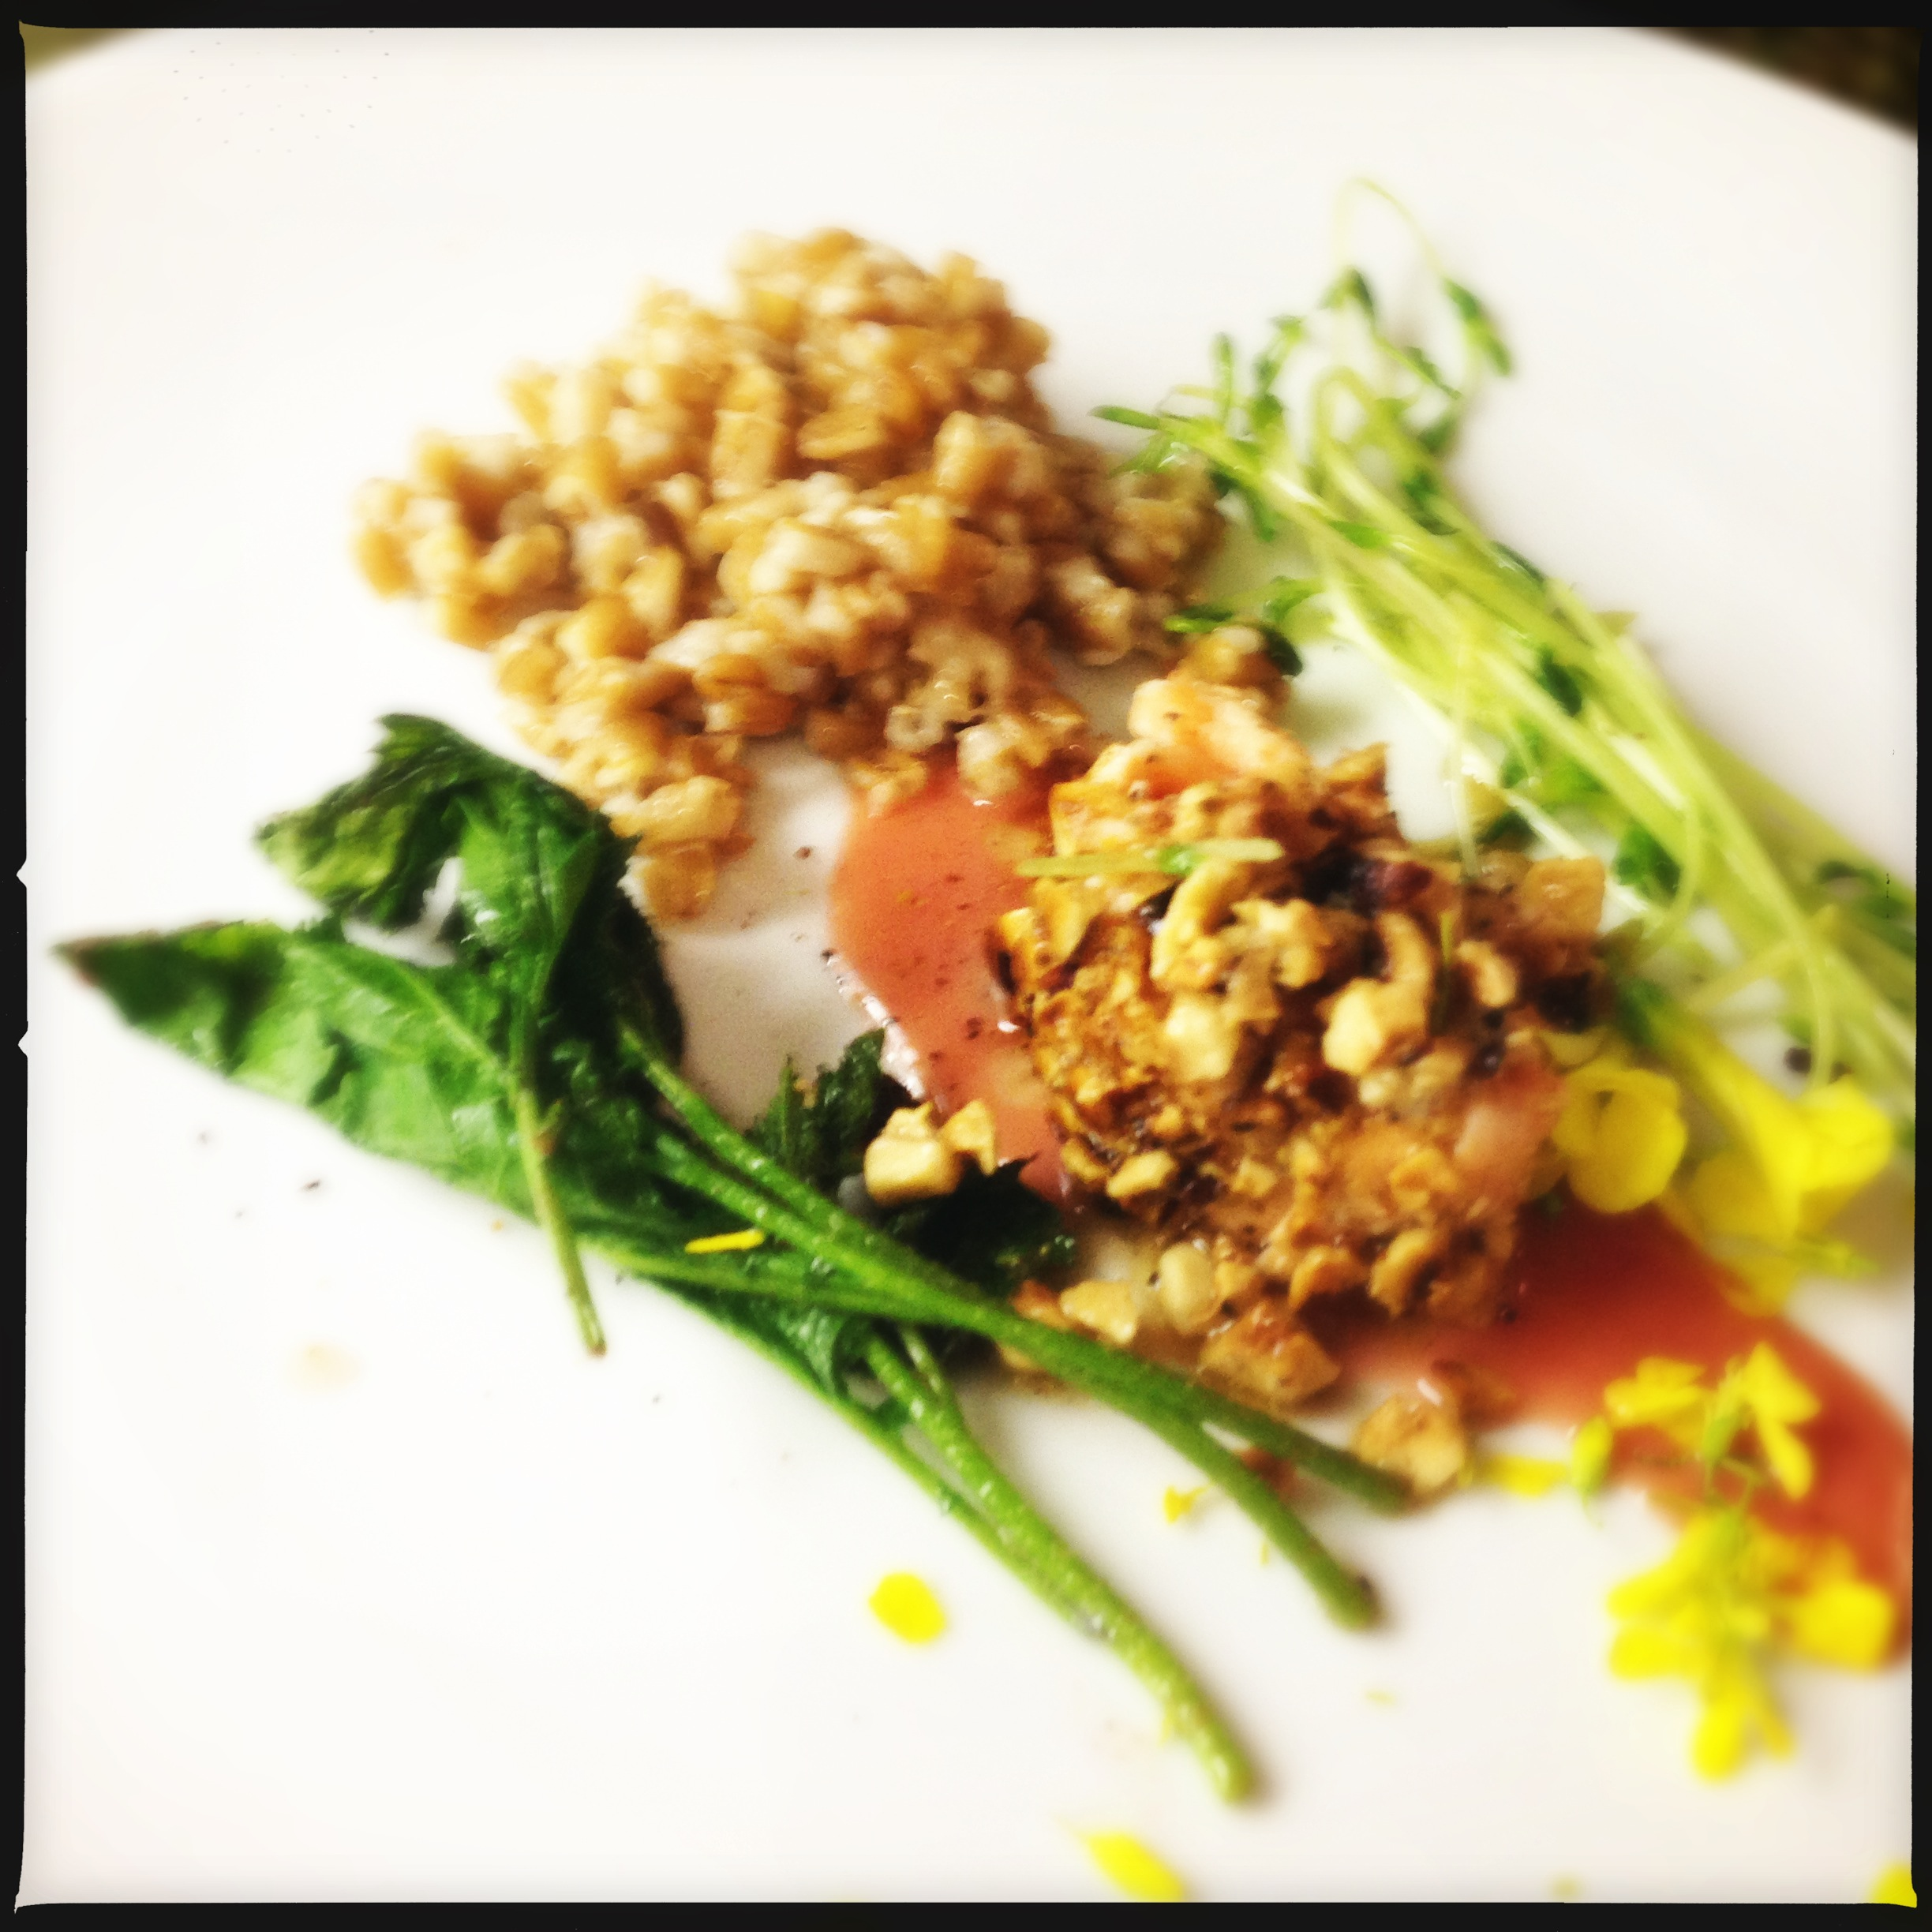 Hazelnut-crusted salmon with sauteed pea greens, rhubarb reduction ...